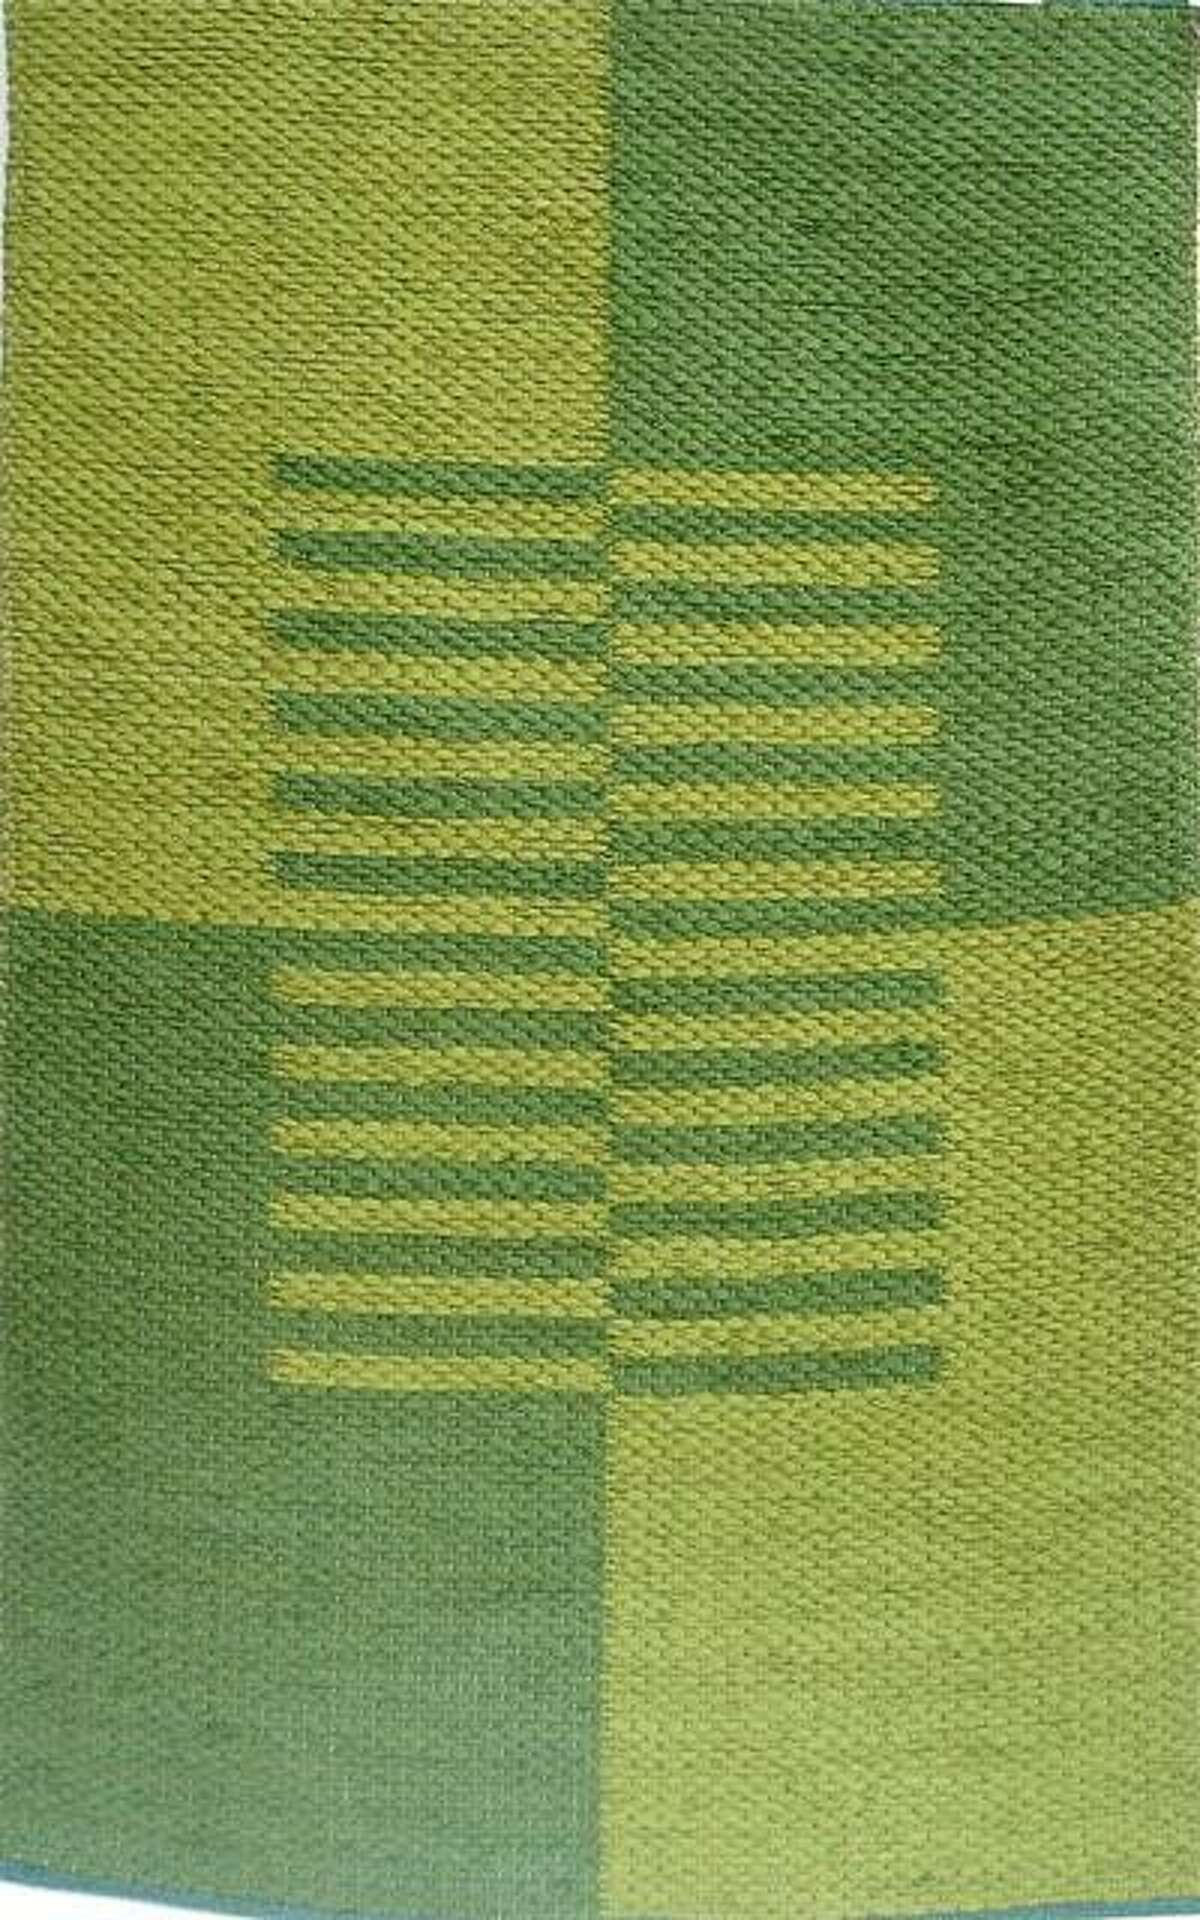 One of Jane Doyle's rugs.